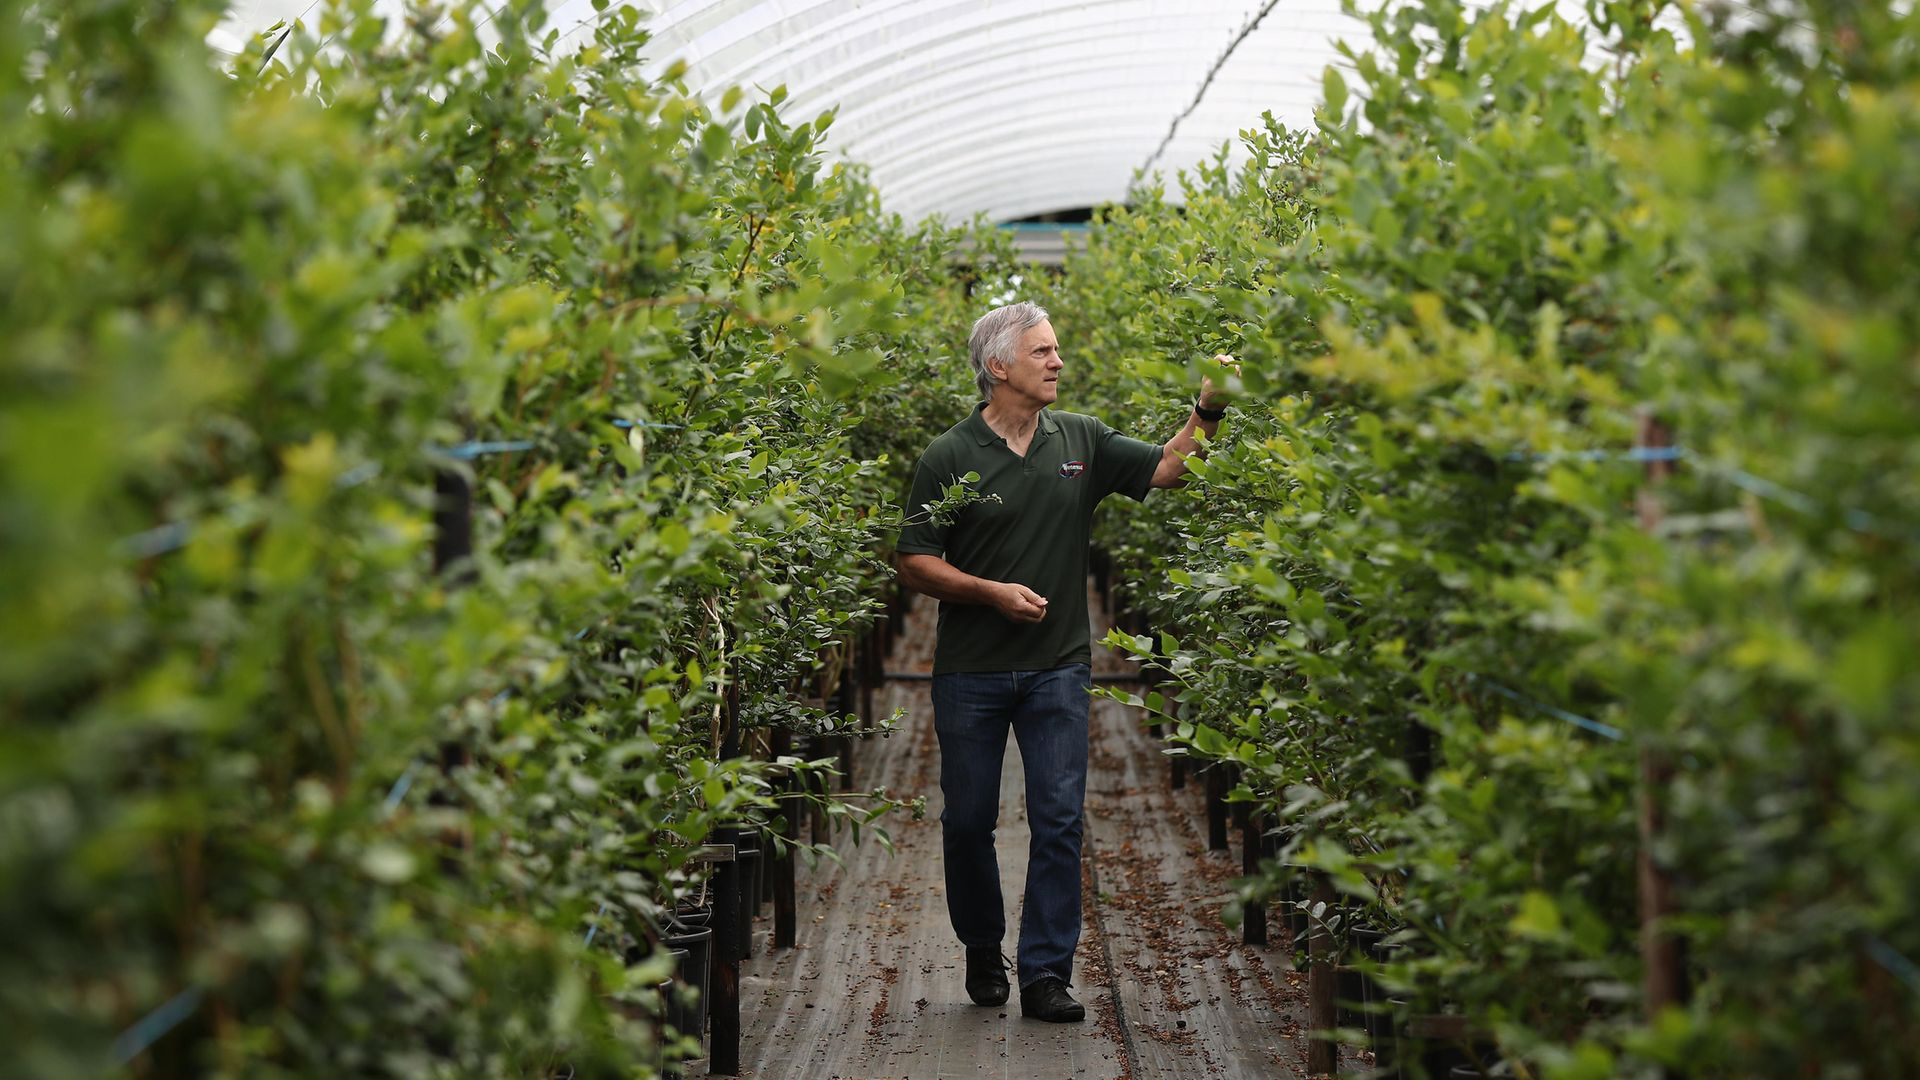 Stephen Taylor, Managing Director of Winterwood Farms fruit farm in Maidstone, Kent, says he is struggling to fill positions for fruit pickers in the summer months with the number of seasonal workers applying down 90% - Credit: PA Wire/PA Images